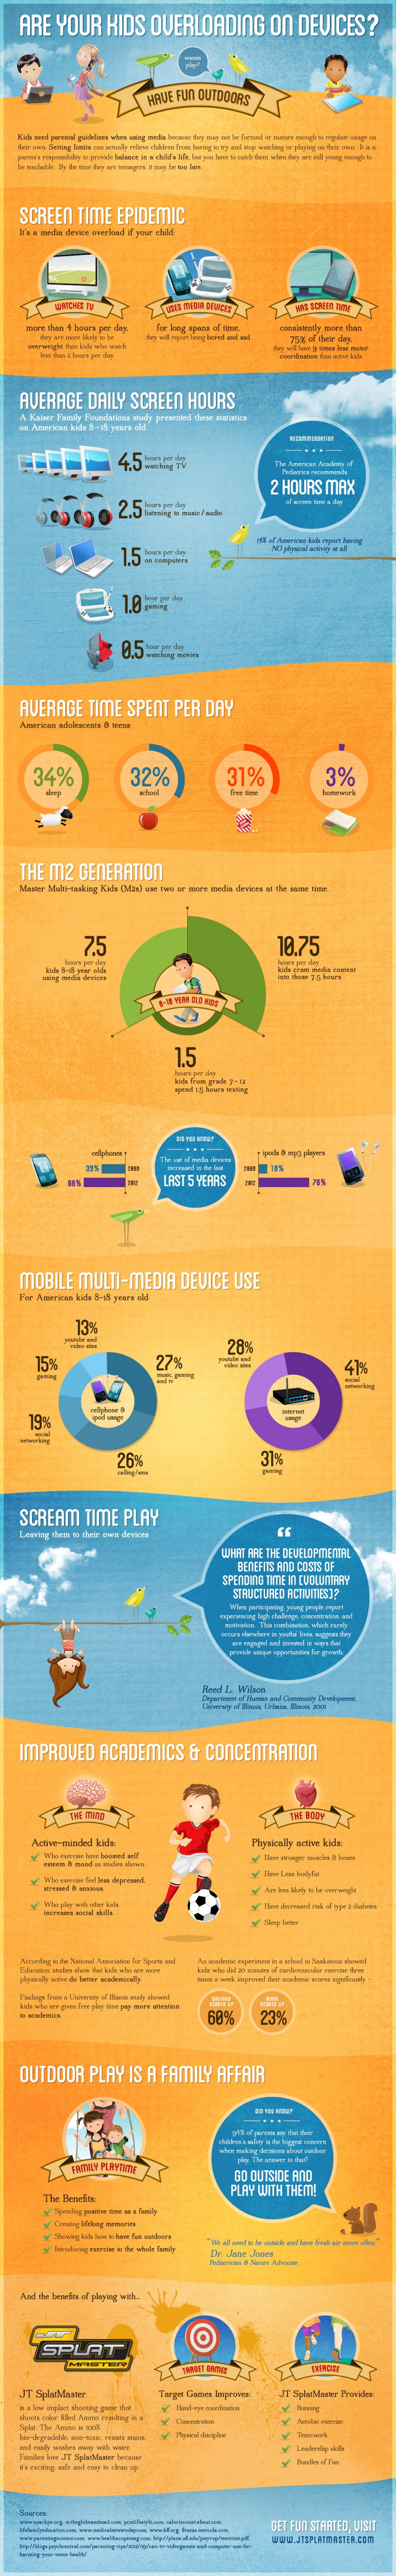 Are Your Kids Overloading On Devices? Infographic